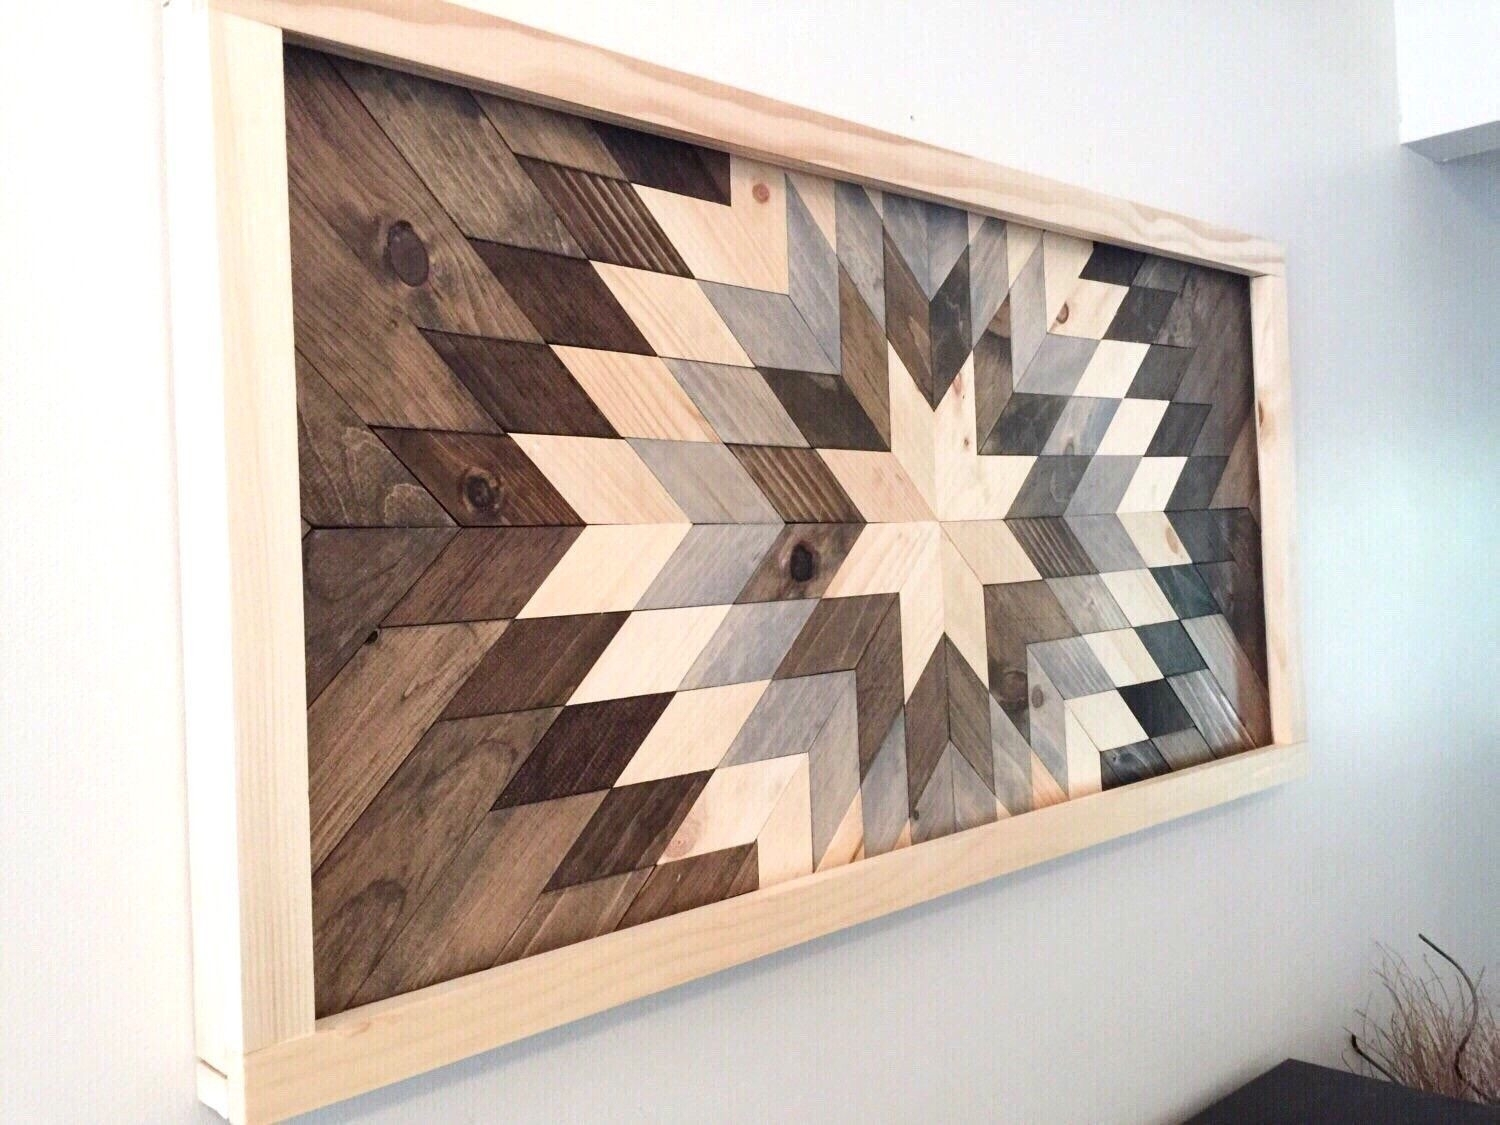 Wood Wall Art Wooden Sunburst Design Of Wood Pallet Wall Art | Wall With Most Popular Pallet Wall Art (View 15 of 15)